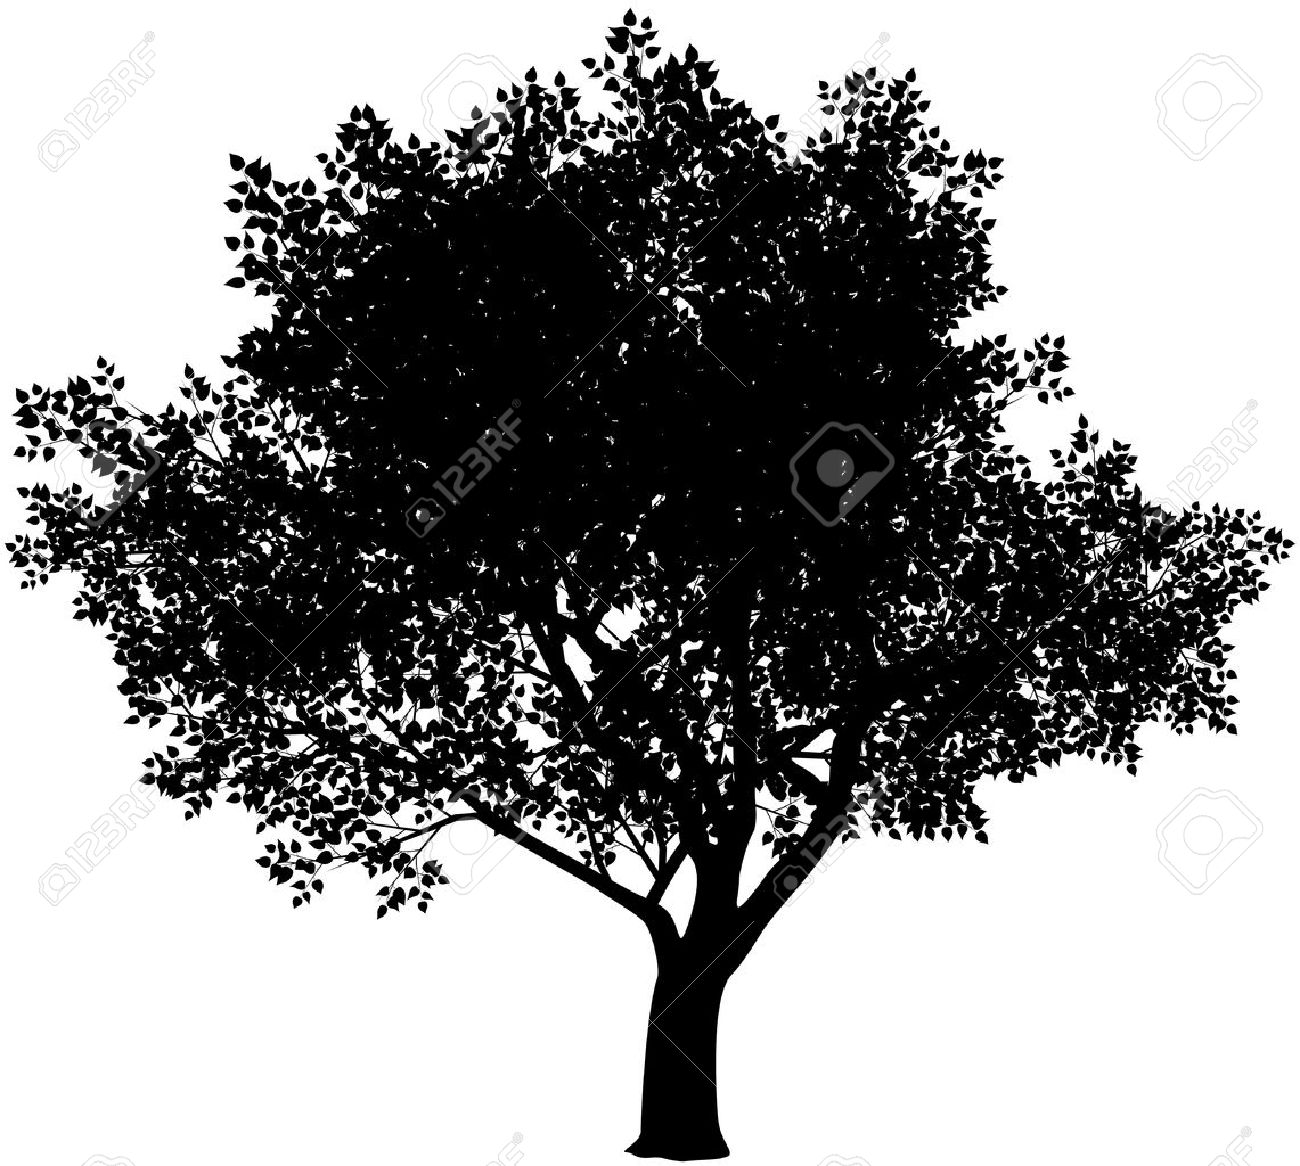 1300x1166 Vector Black And White Tree Silhouette. Eps8. Gradients Free